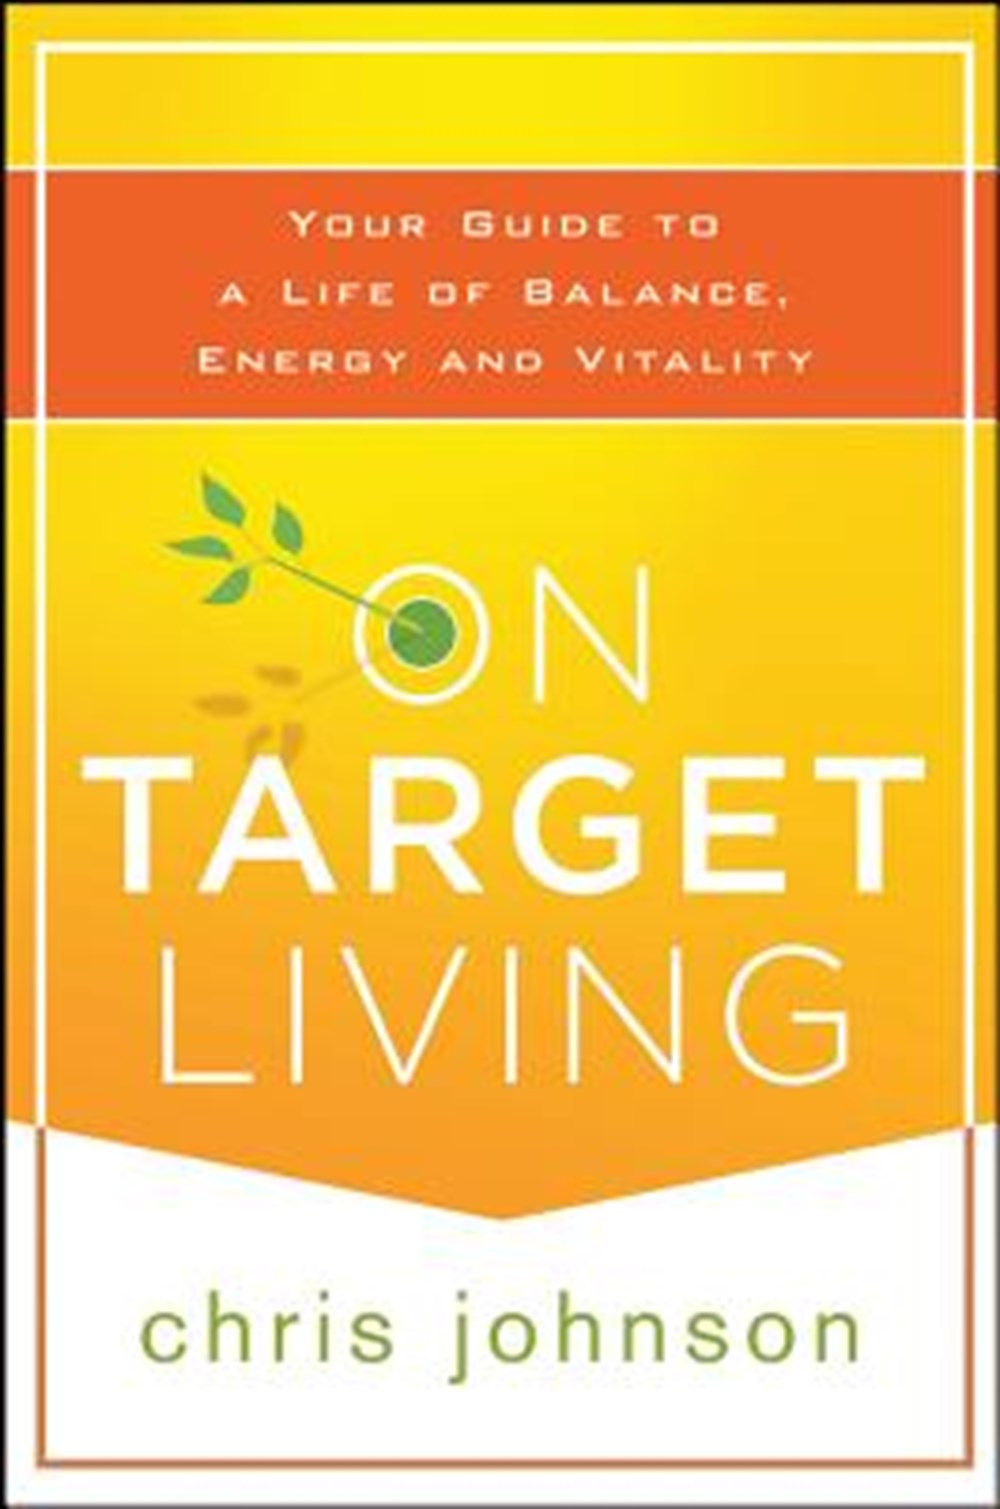 On Target Living Your Guide to a Life of Balance, Energy, and Vitality